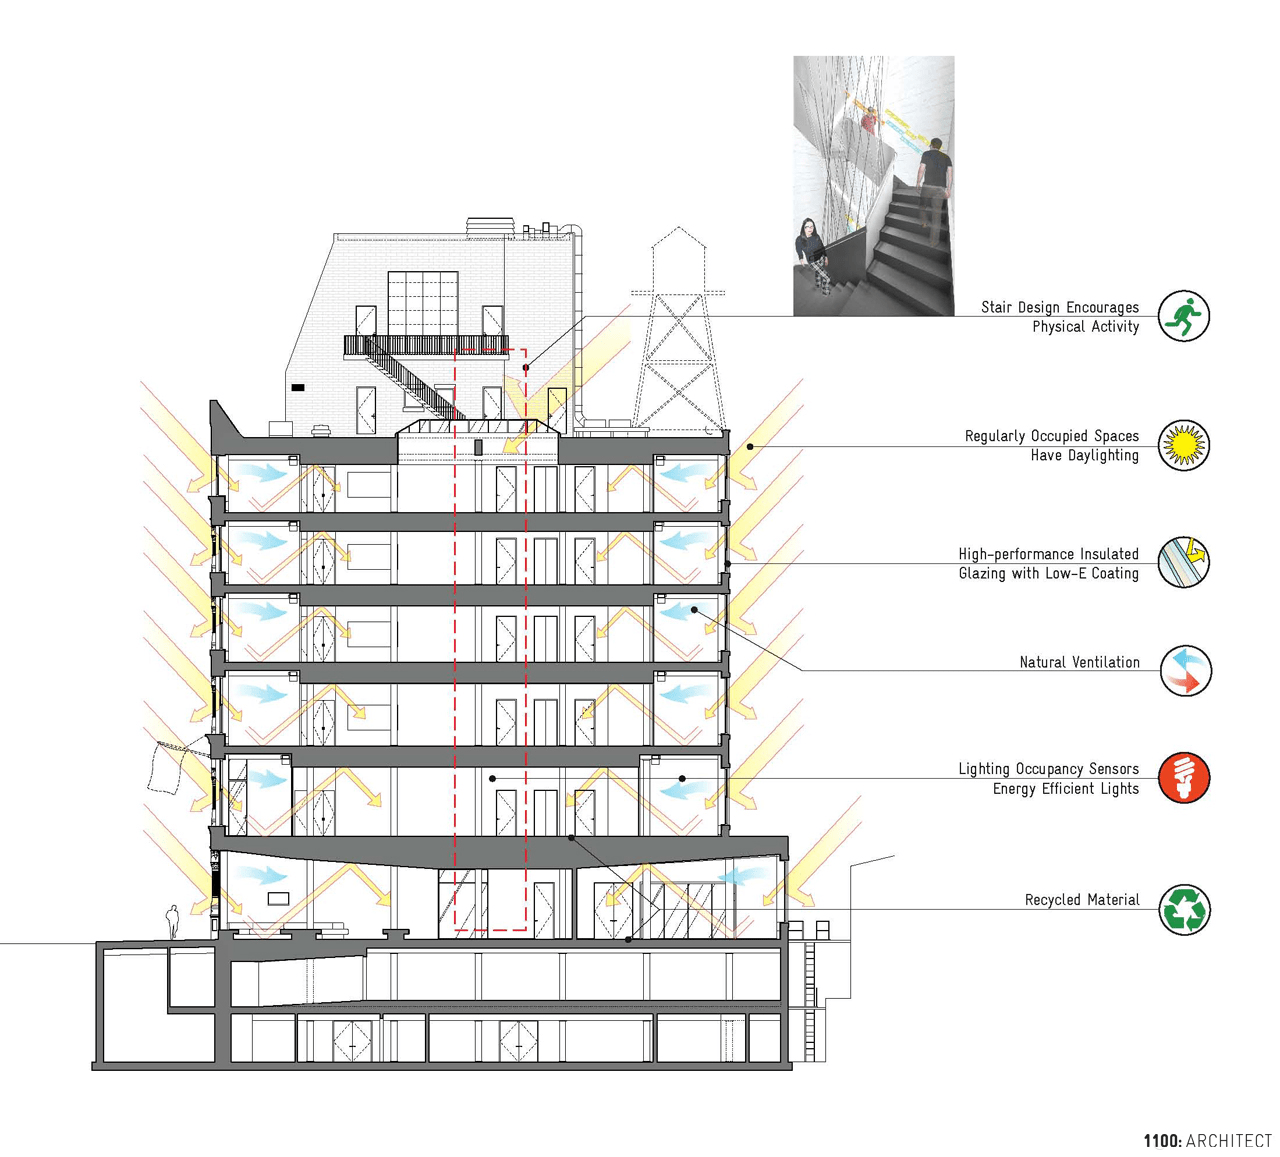 architecture section diagram 2003 harley fatboy wiring gallery of nyu 39s department linguistics 1100